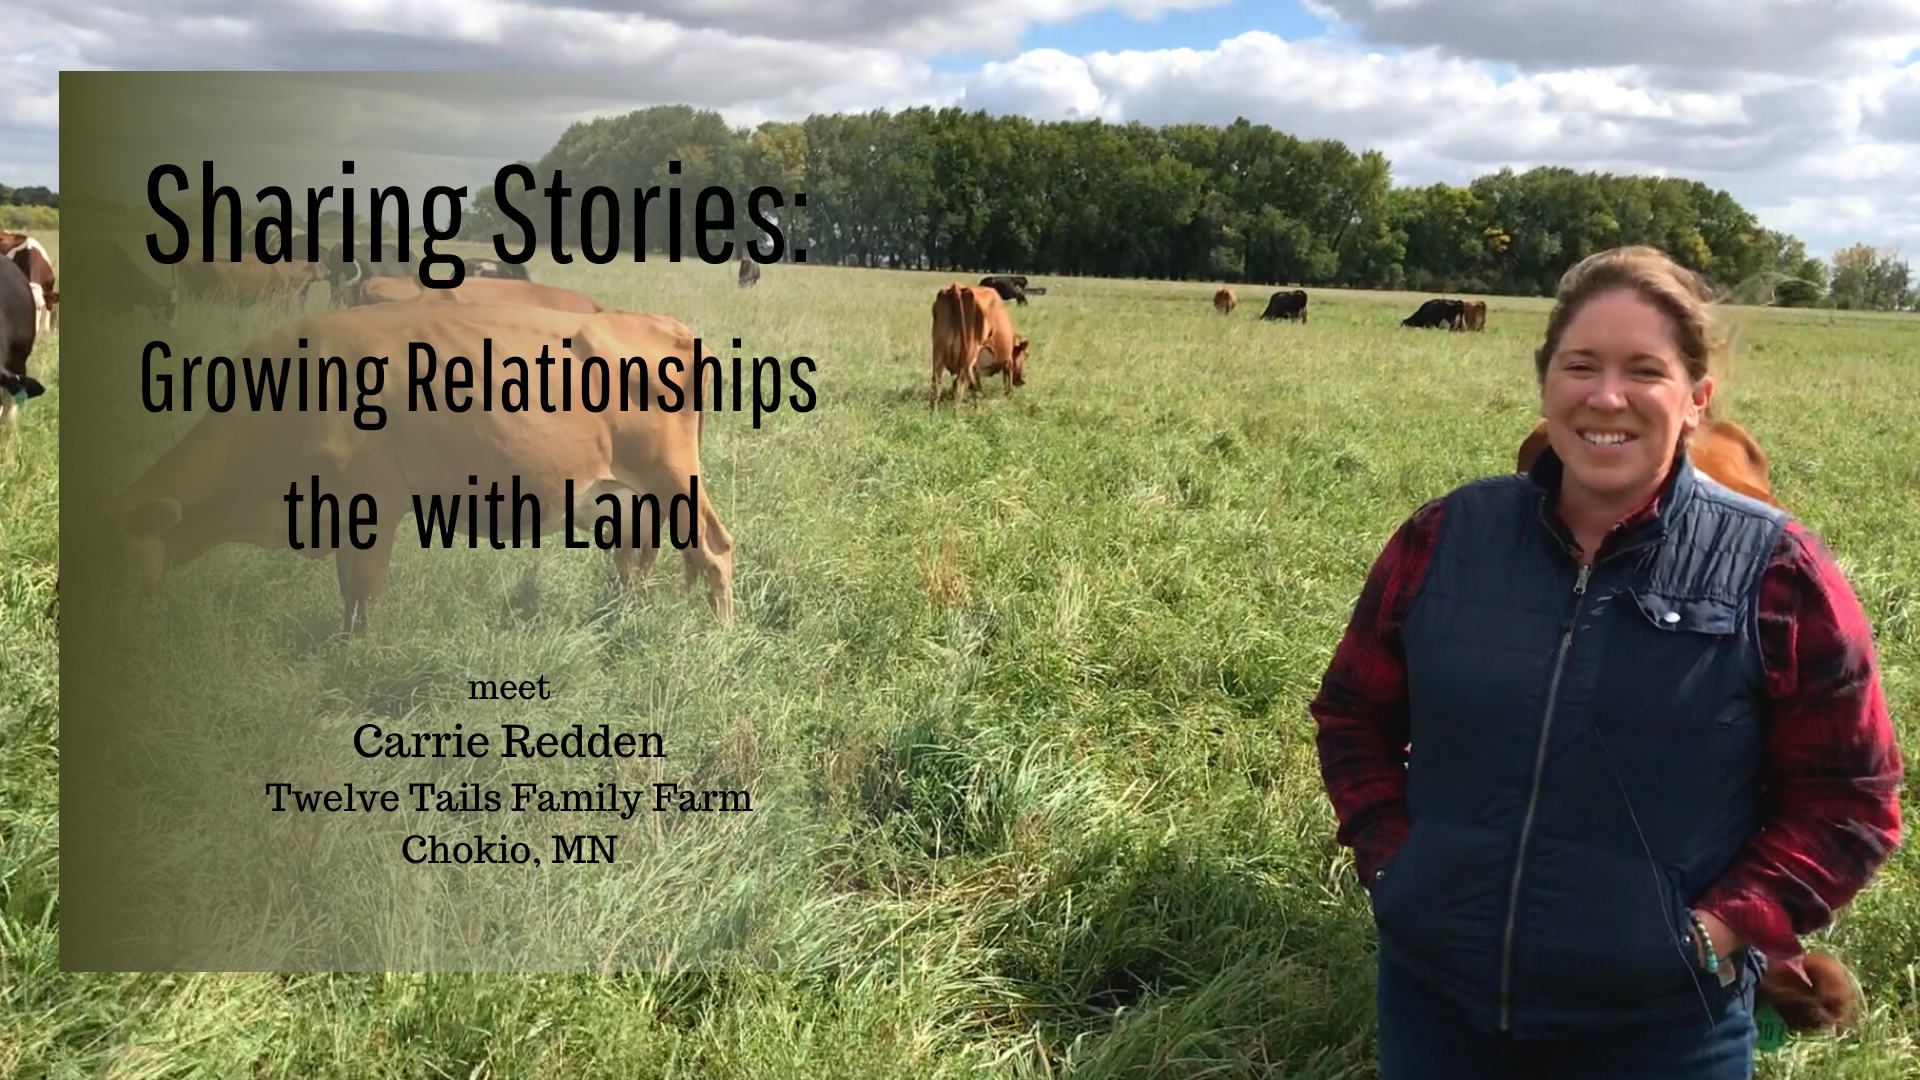 Carrie Redden in her pasture with cow - Sharing Stories webinar